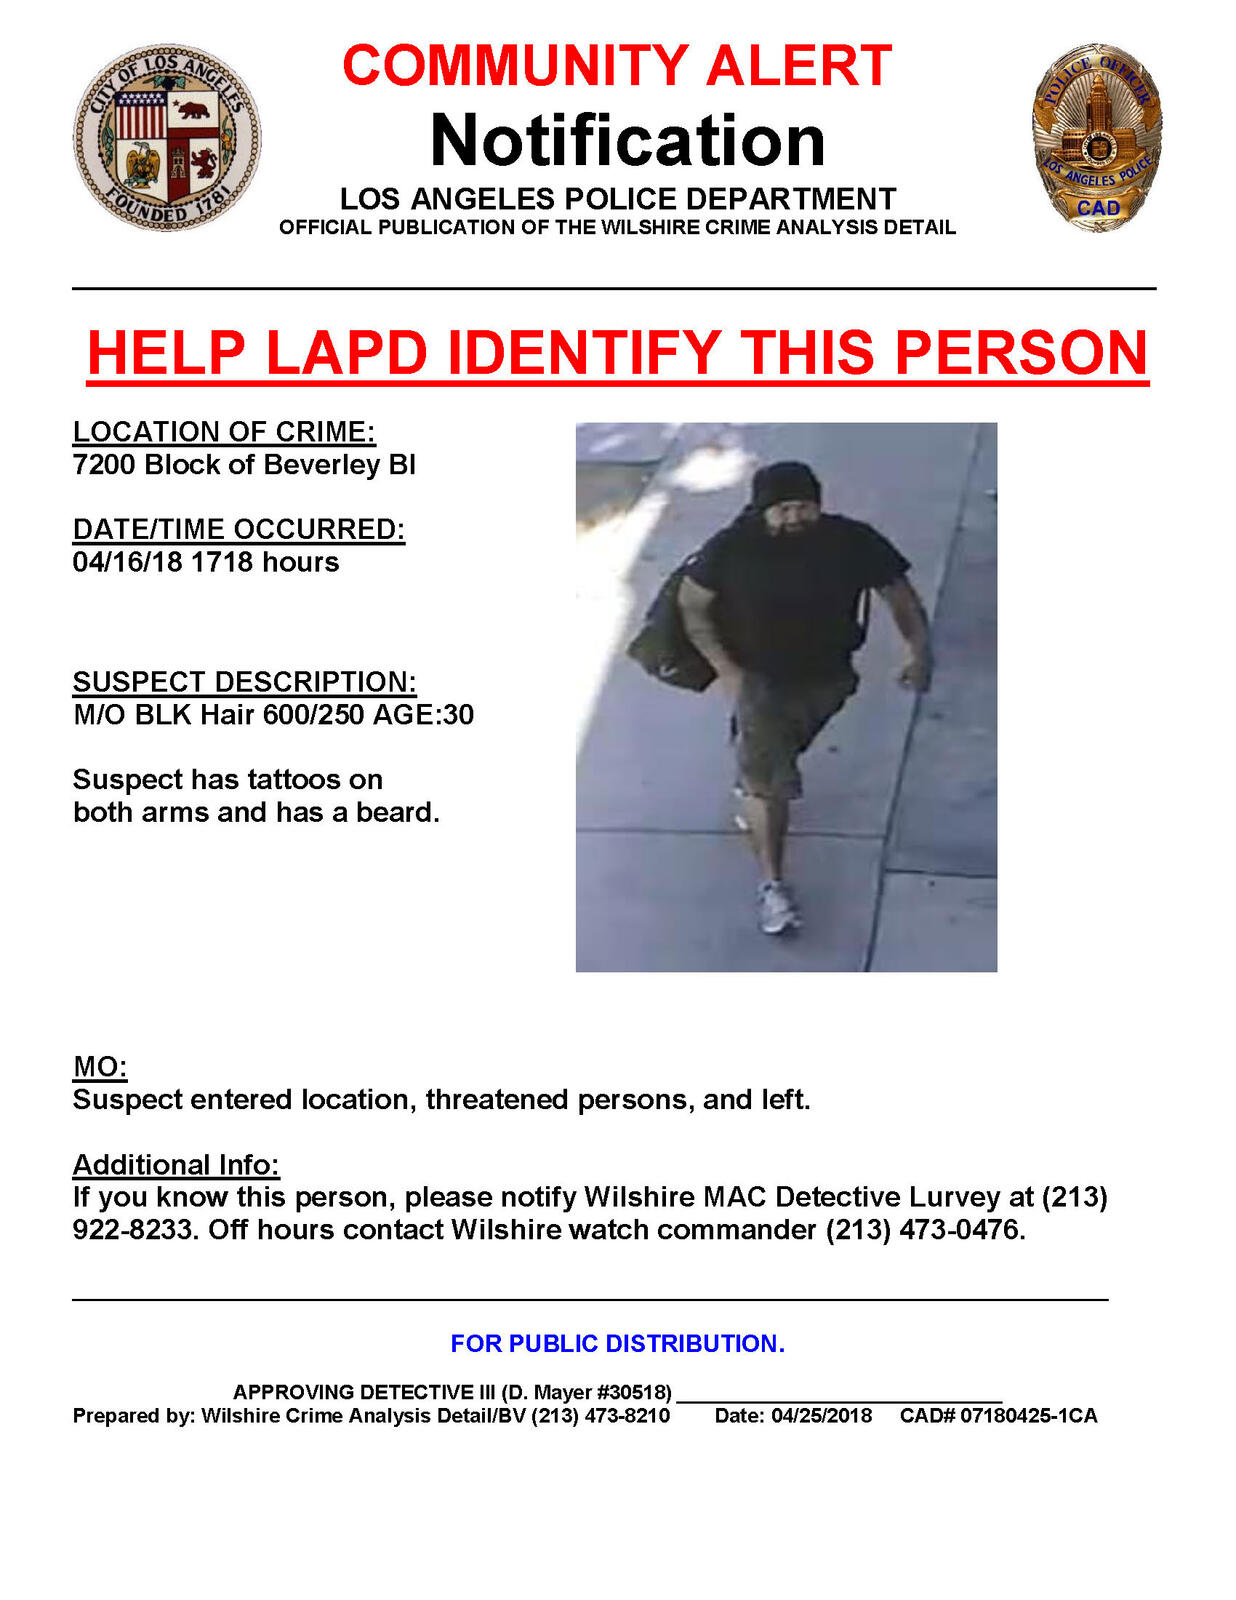 Community Alert-Help LAPD Identify this person (Los Angeles